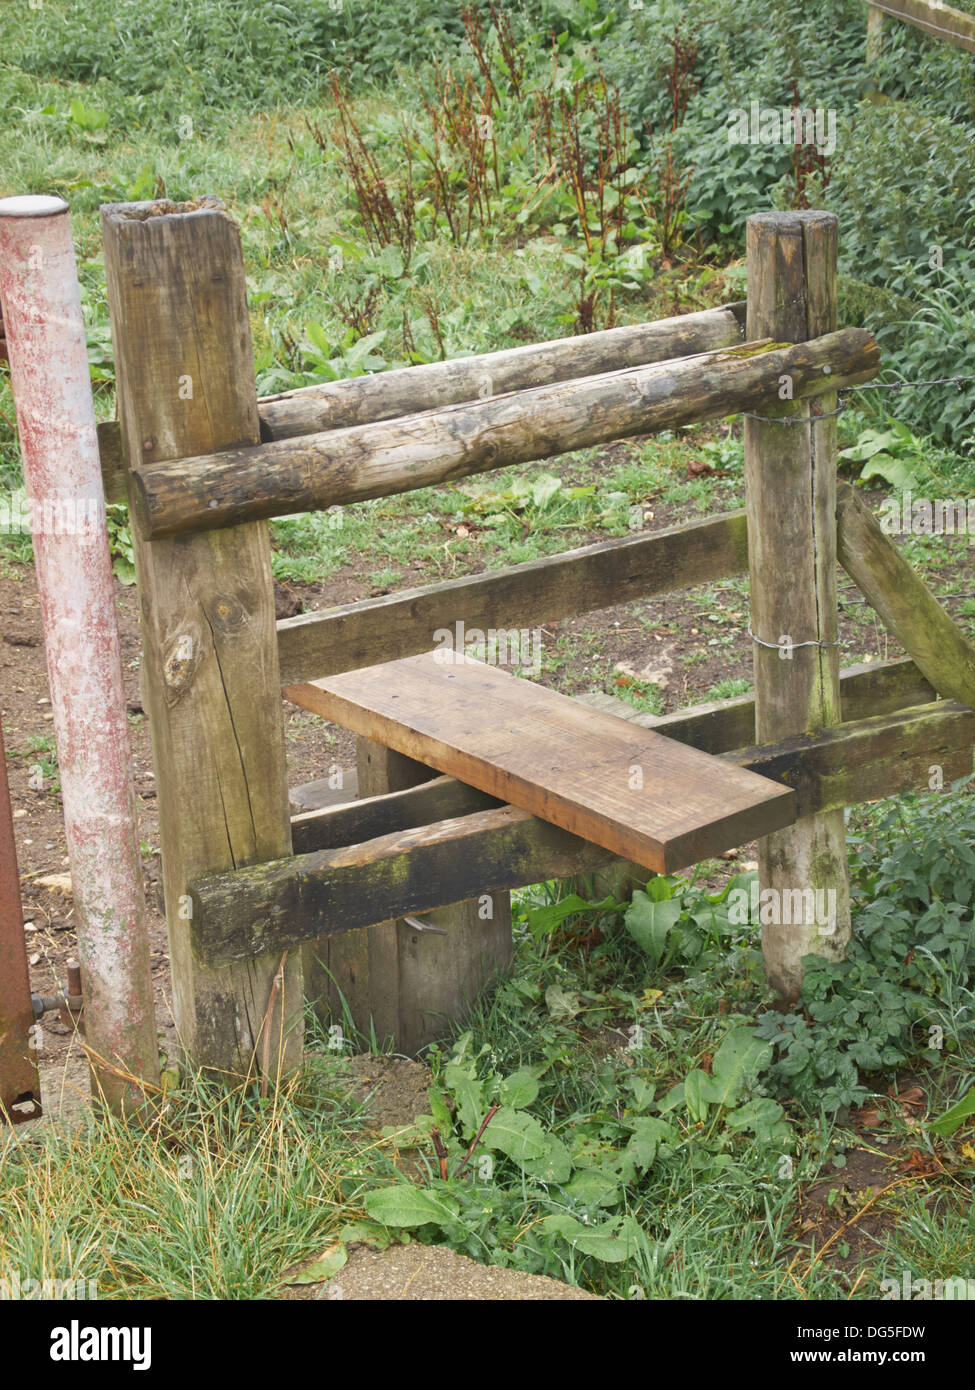 Stile on the Thames Path, Ewen, Gloscestershire, England - Stock Image